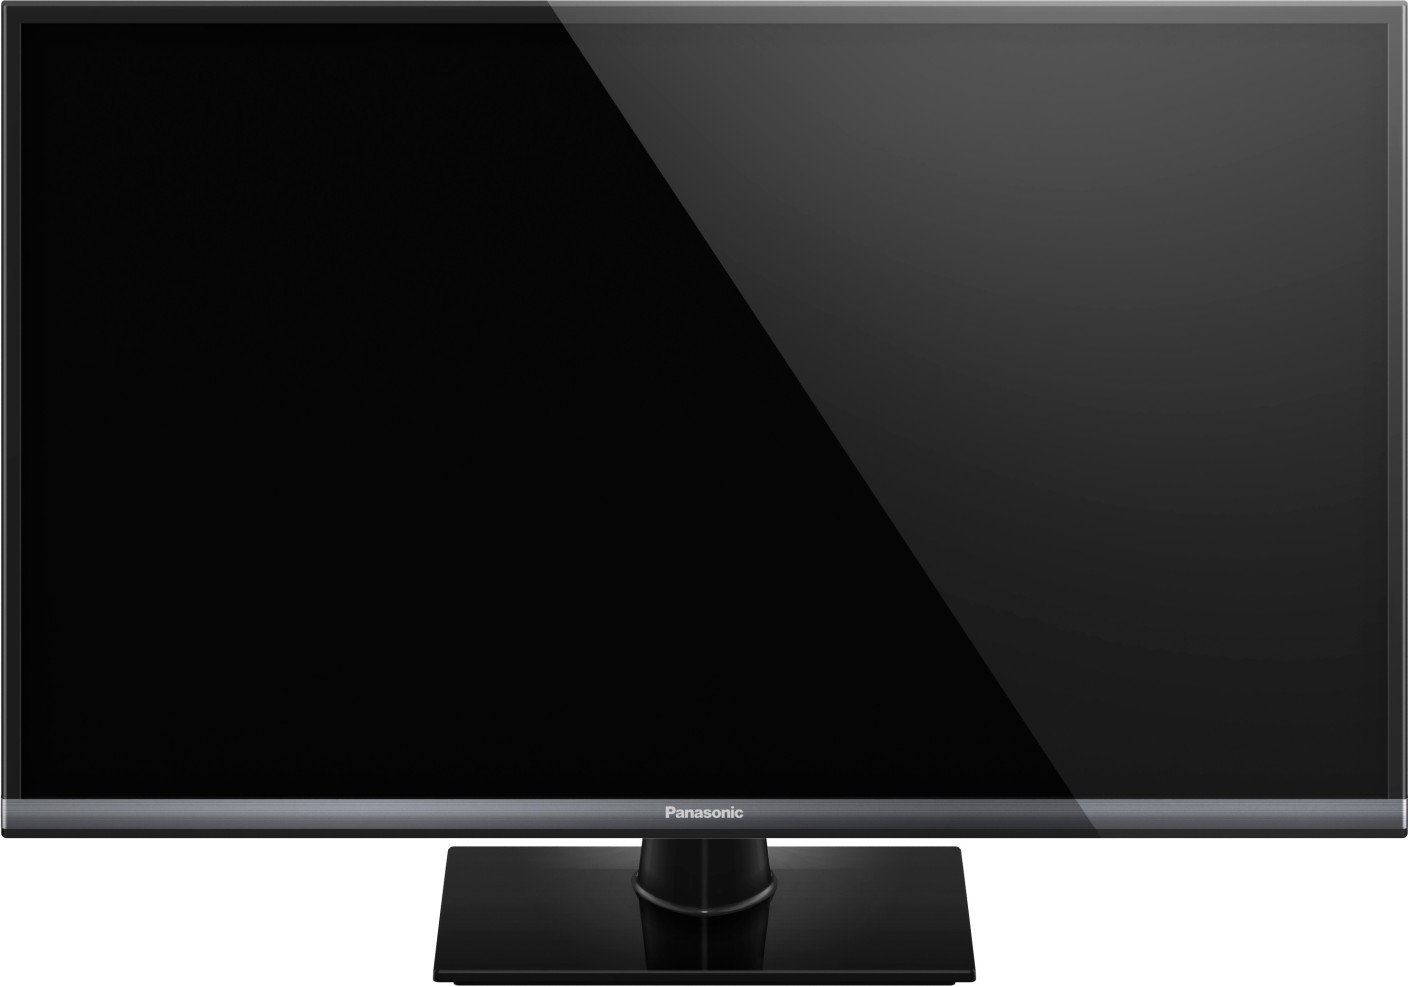 panasonic 80 cm 32 inch hd ready led smart tv online at best prices in india. Black Bedroom Furniture Sets. Home Design Ideas